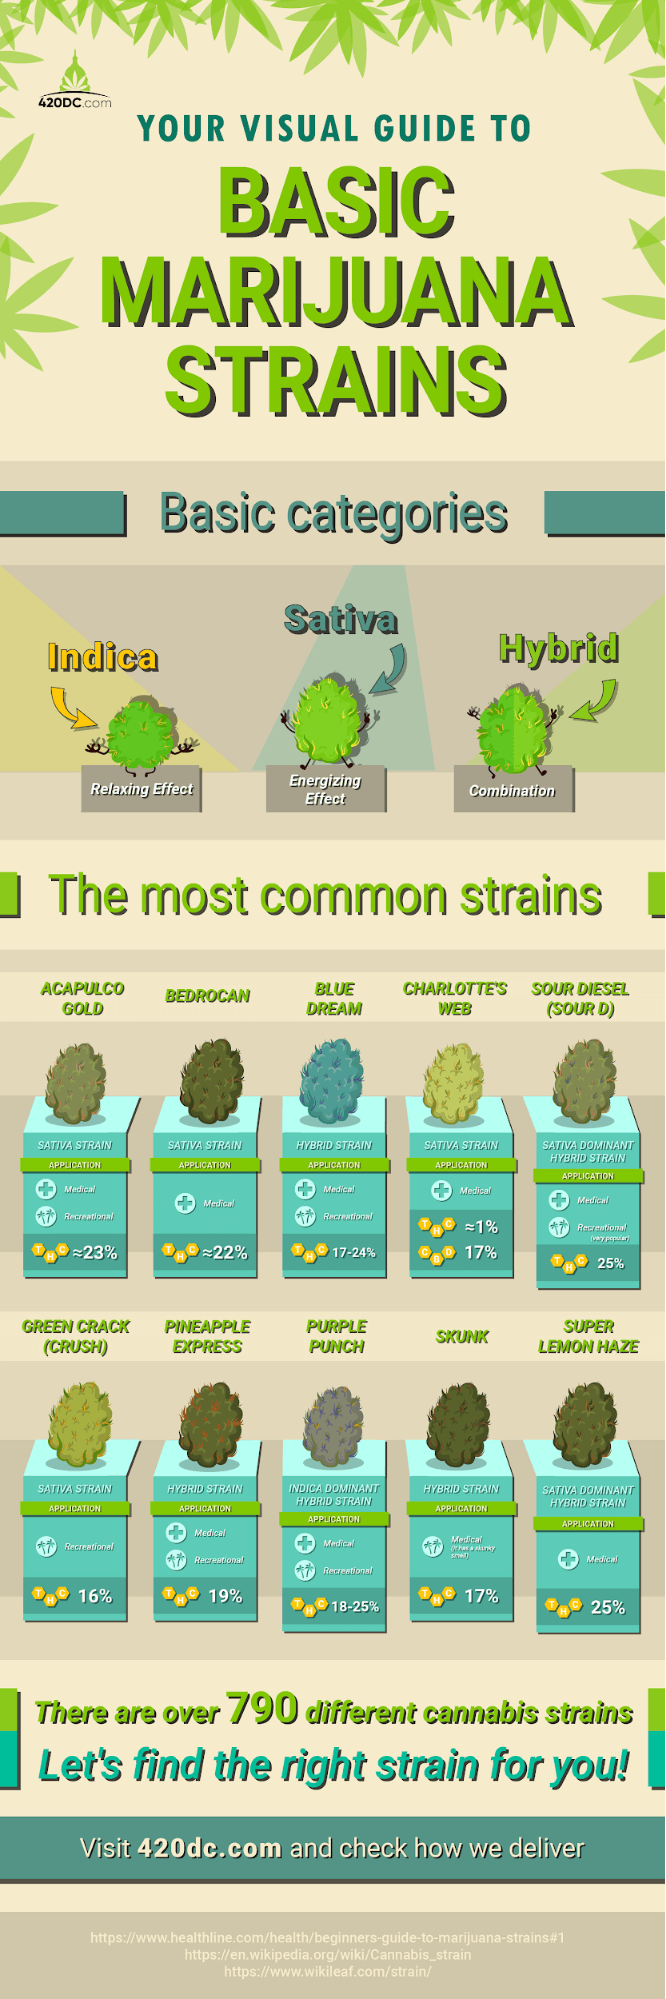 Basic Marijuana Strains